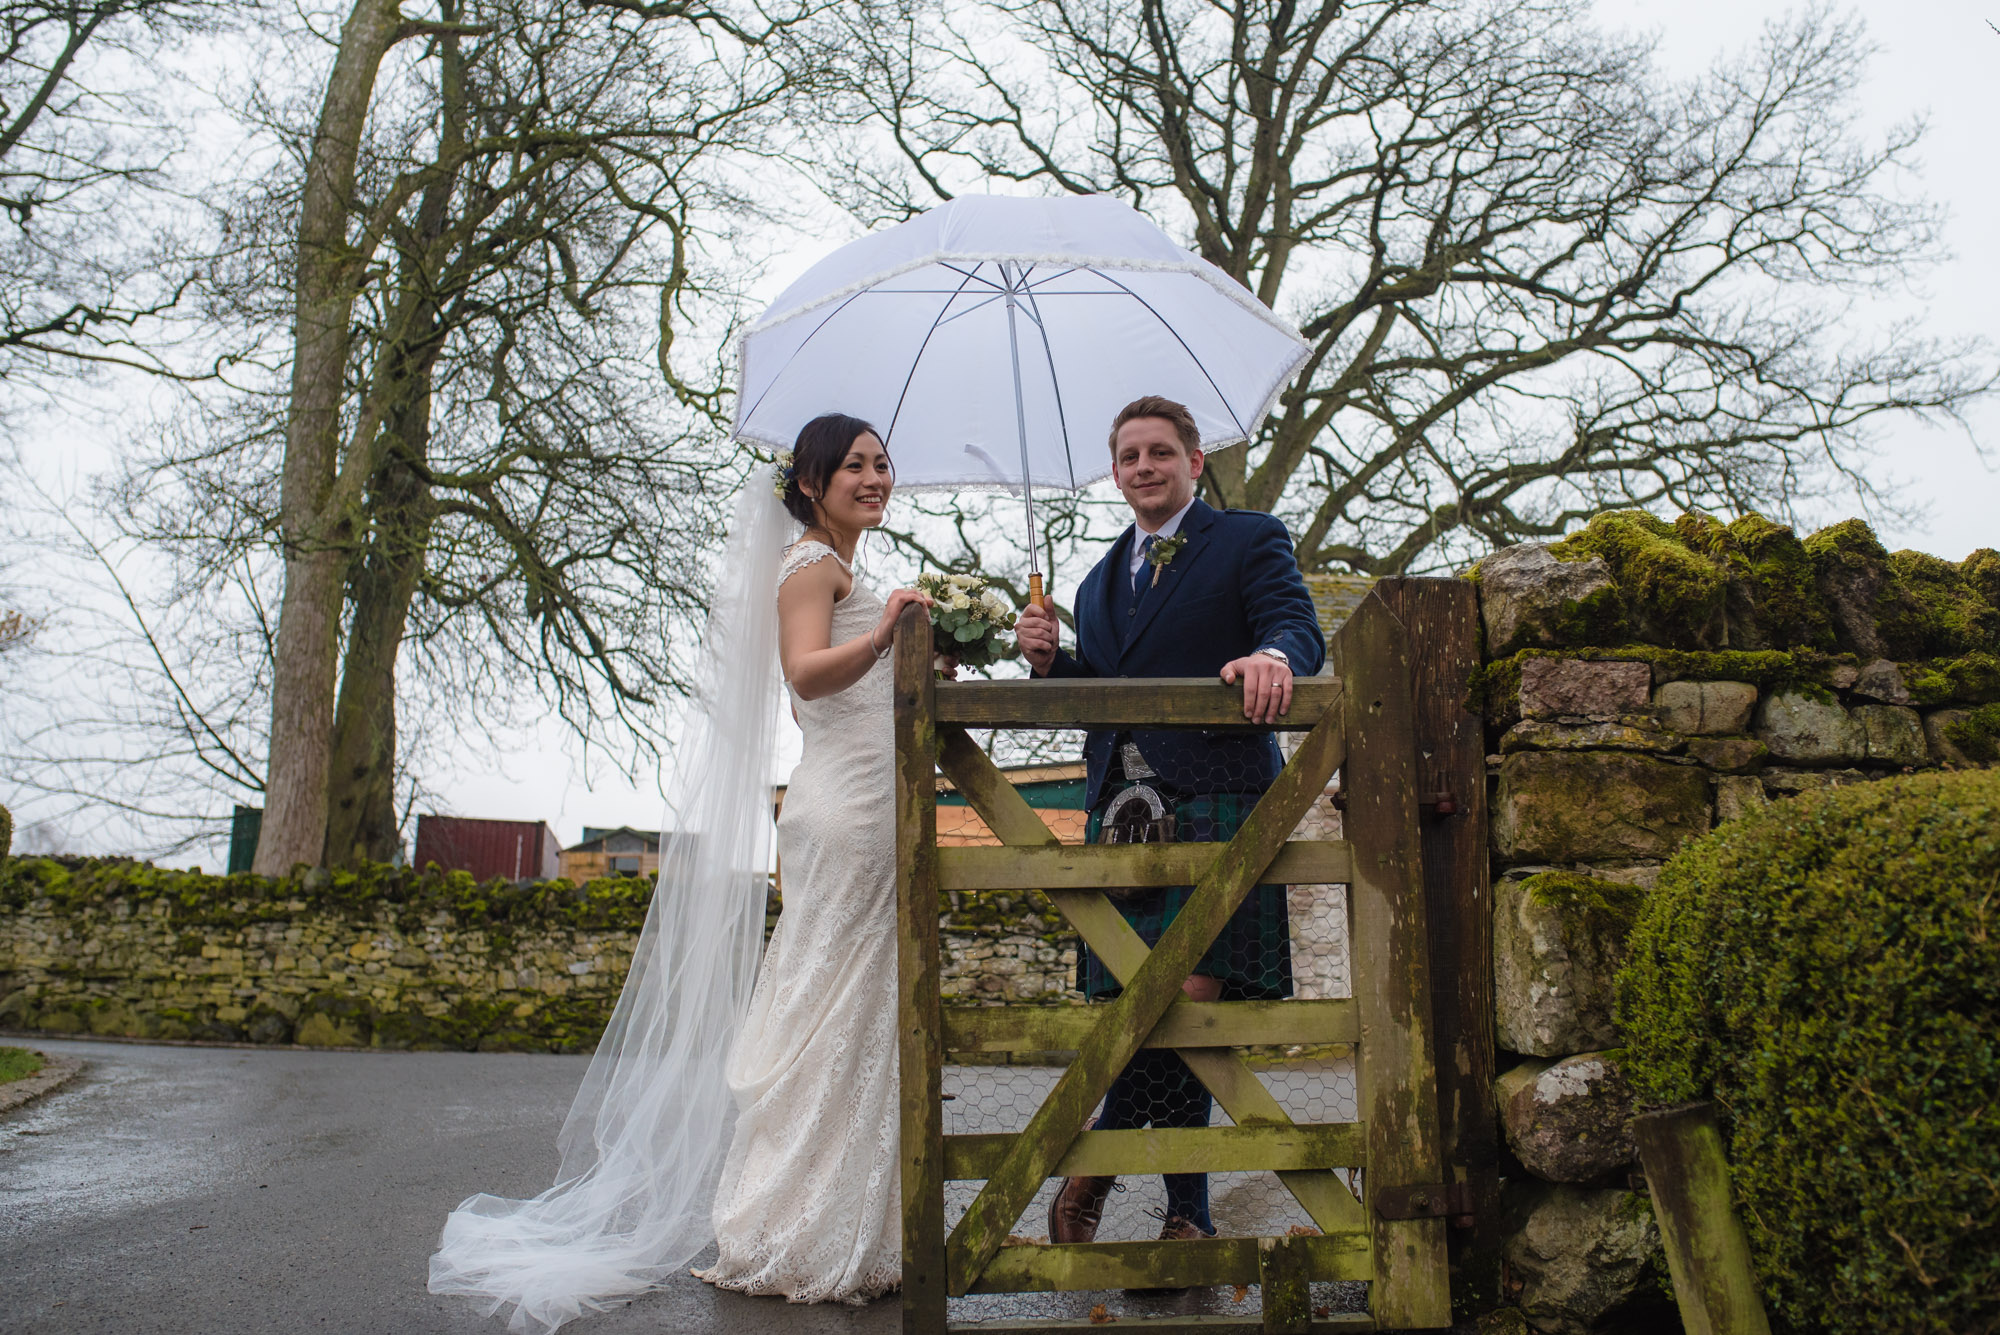 The bride and groom stand by the gate outside the barn at Askham Hall.